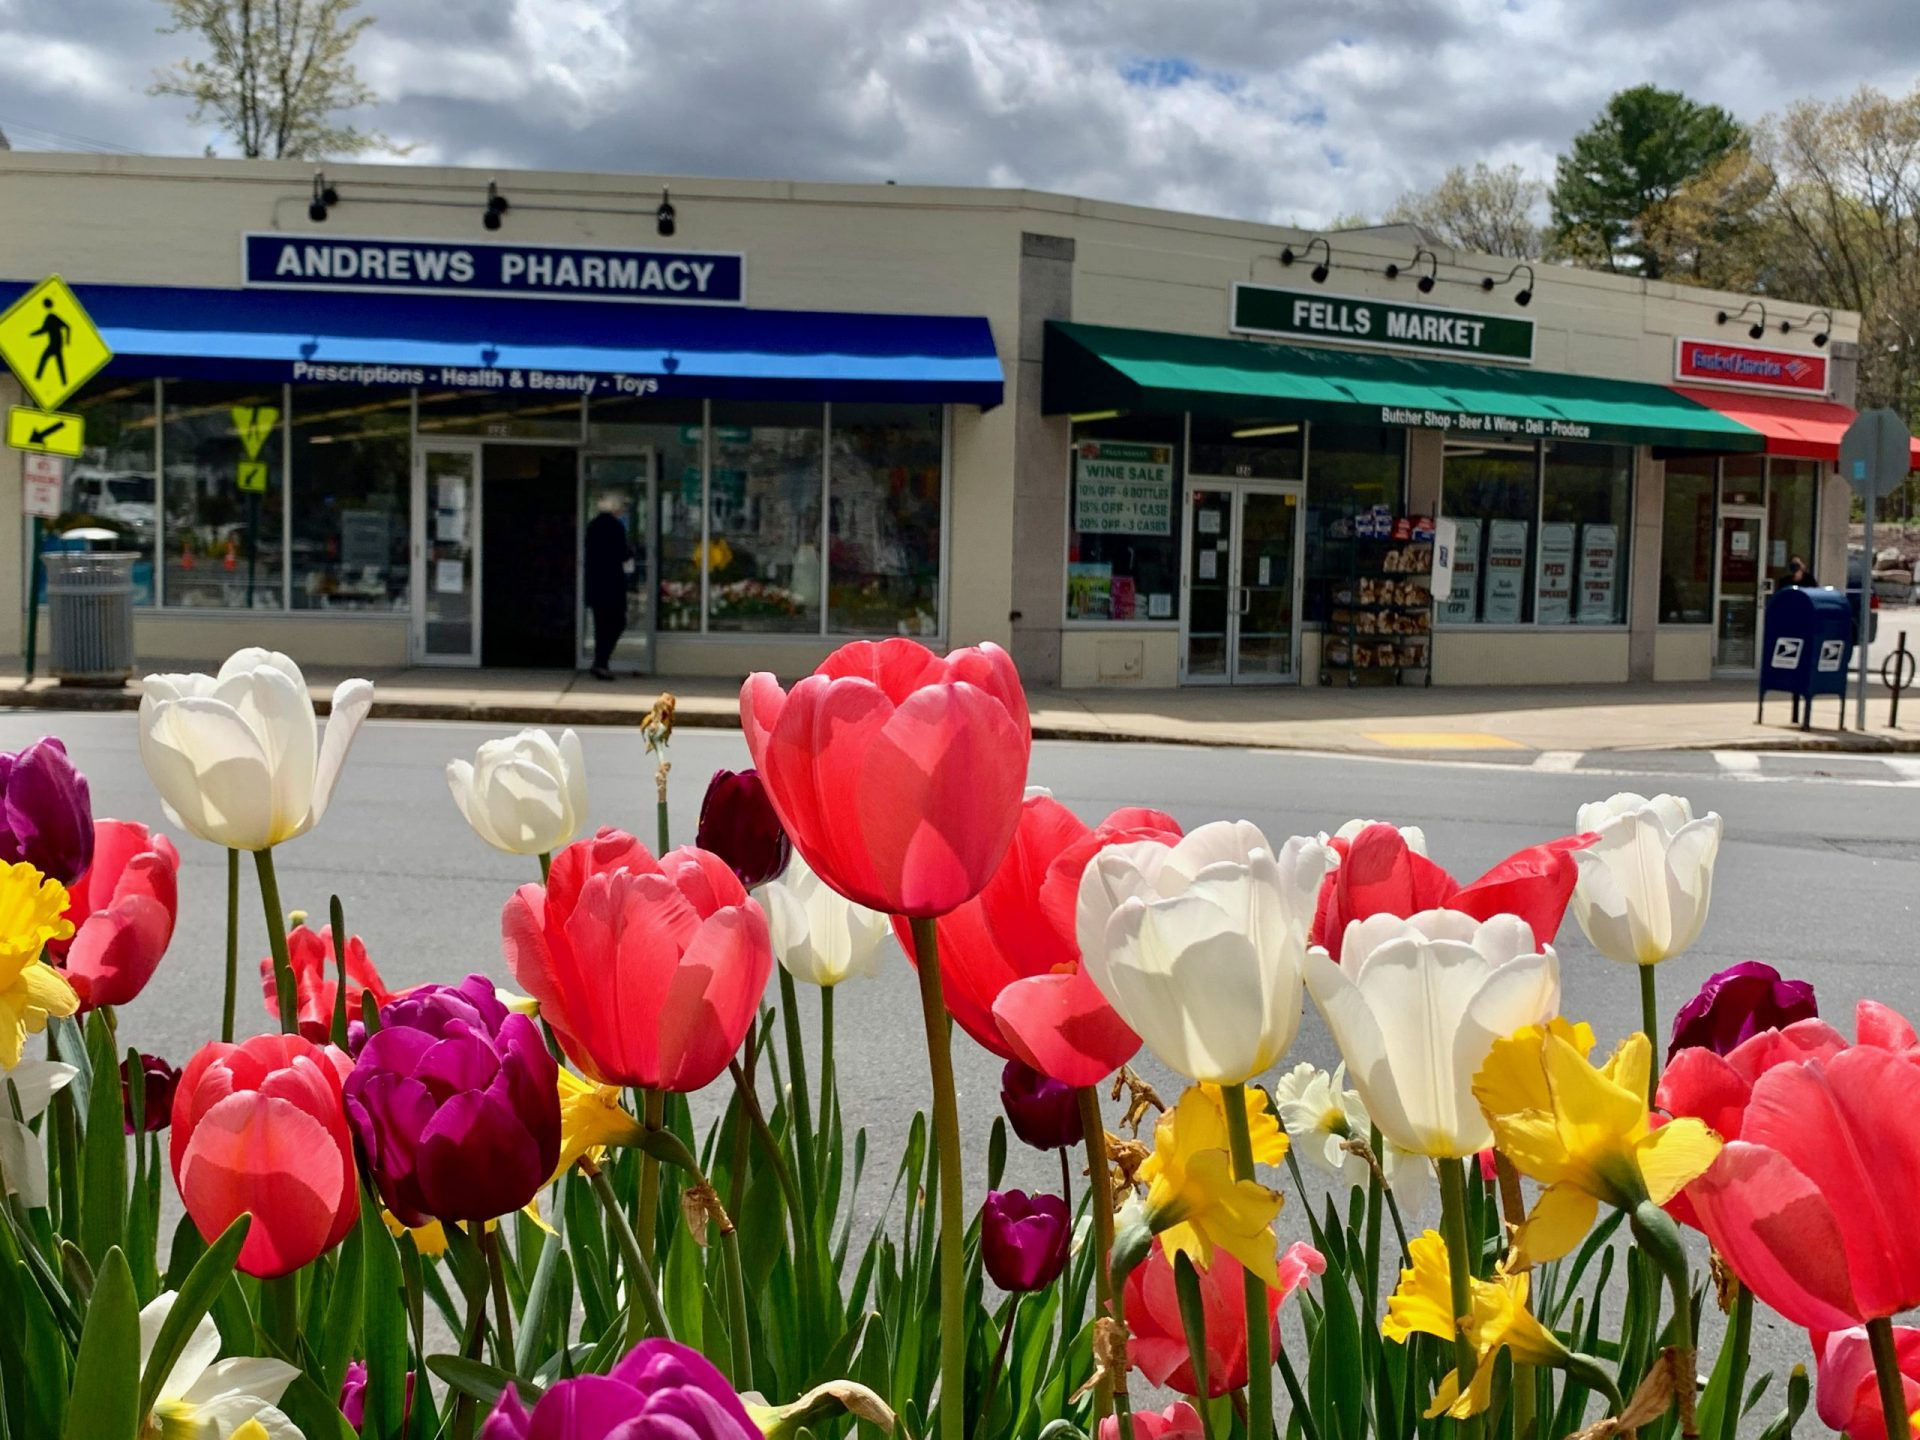 Andrews Pharmacy & Fells Market, Wellesley